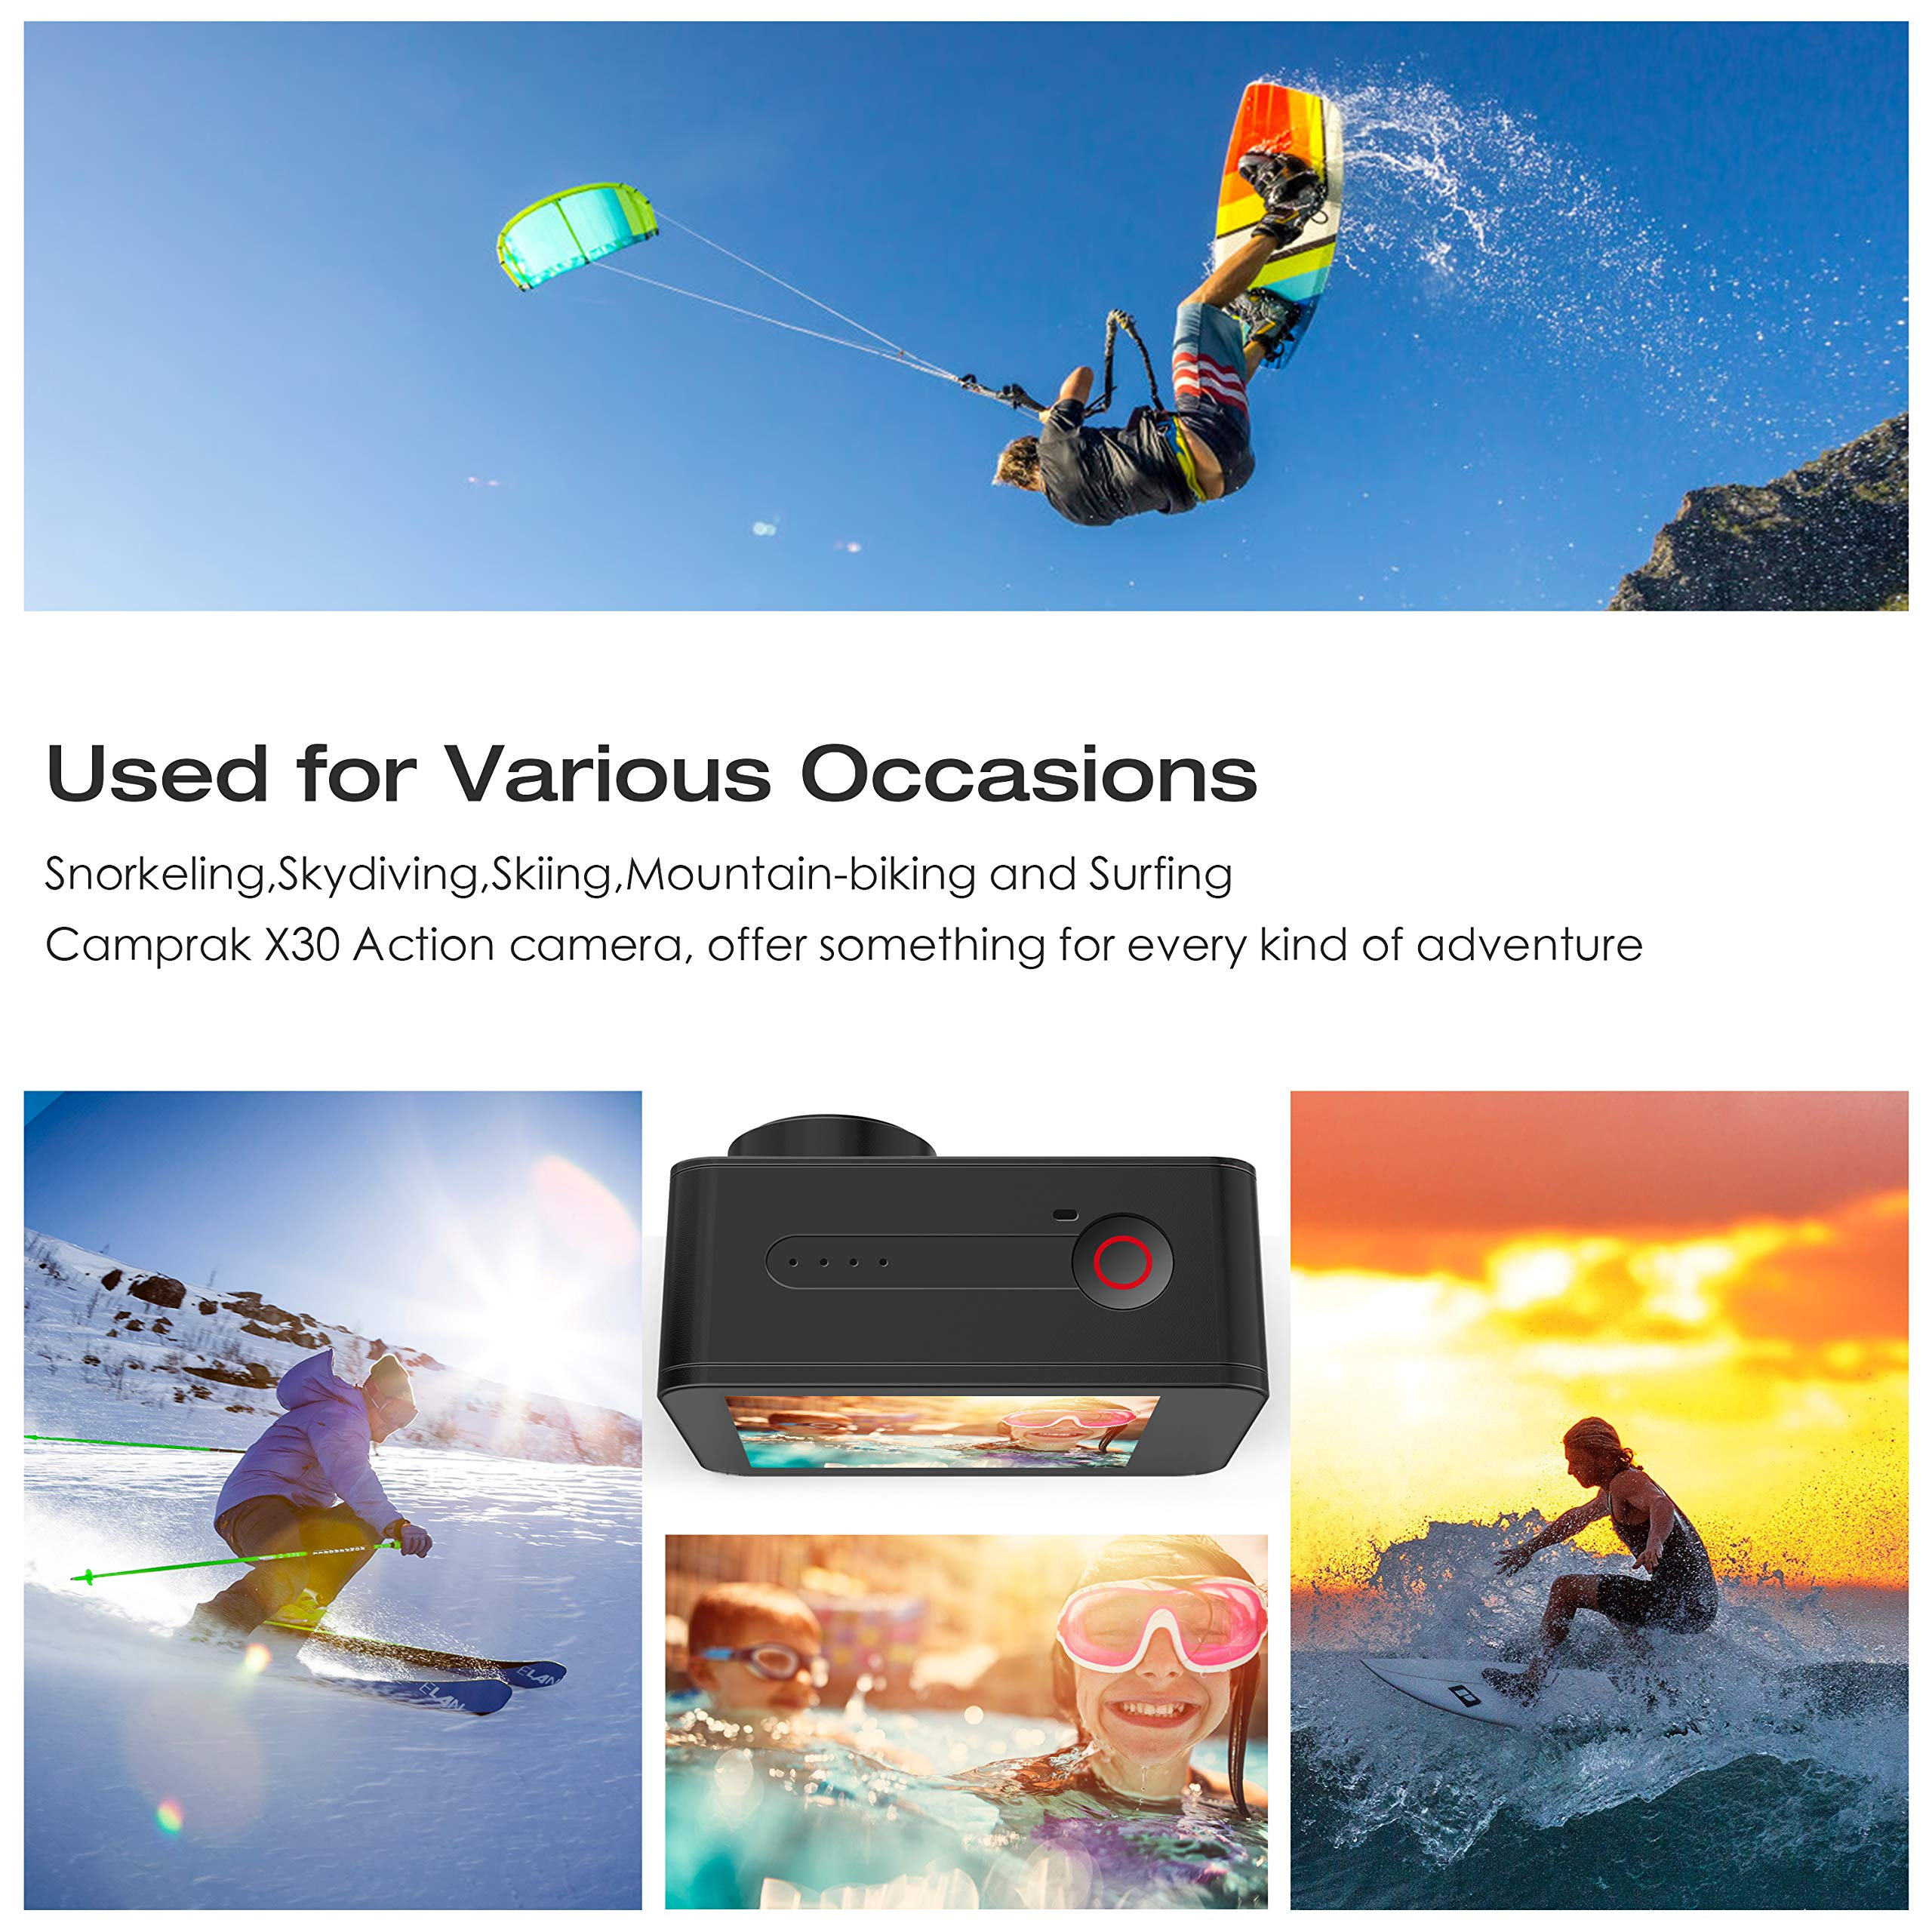 Campark X30 4K Action Camera 20MP EIS Anti Shake WiFi Touch Screen 1080p 120fps Sports Underwater 40m Waterproof Video Cam with 2 Batteries Mounting Accessories Compatible for go pro